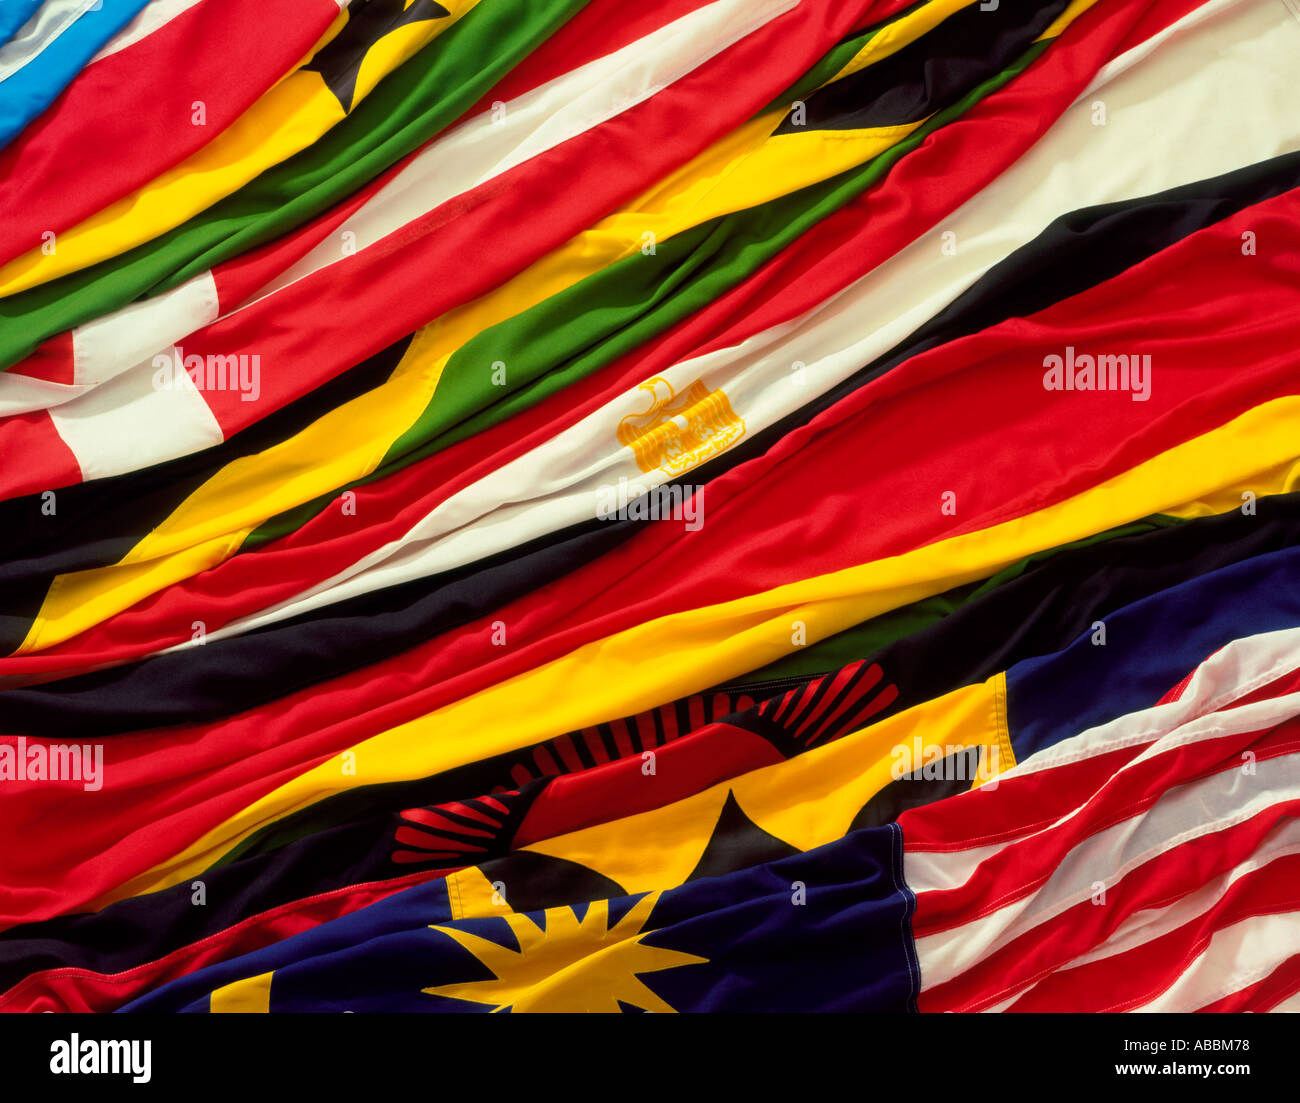 Flags of many nations - Stock Image